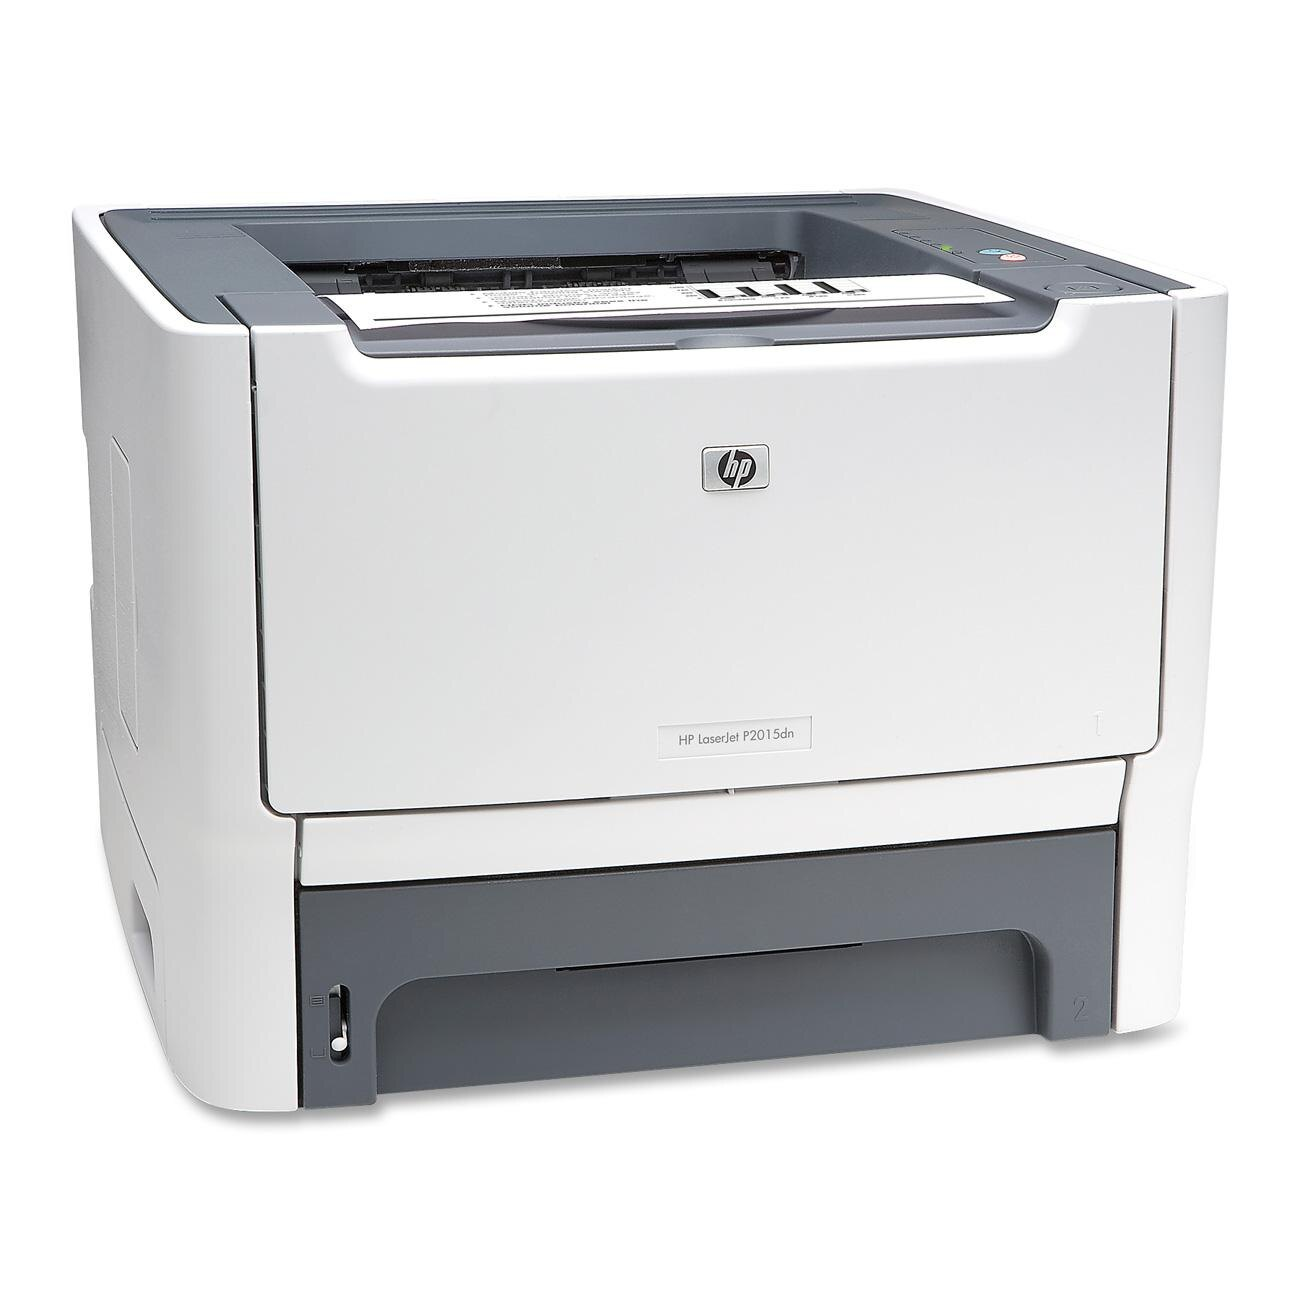 HP LaserJet P2000 P2015DN Laser Printer - Monochrome - 1200 x 1200 dpi Print - Plain Paper Print - Desktop - 27 ppm Mono Print - Custom Size, Letter, Legal, Executive, Index Card, Envelope No. 10, Monarch Envelope - 300 sheets Standard Input Capacity - 15 0